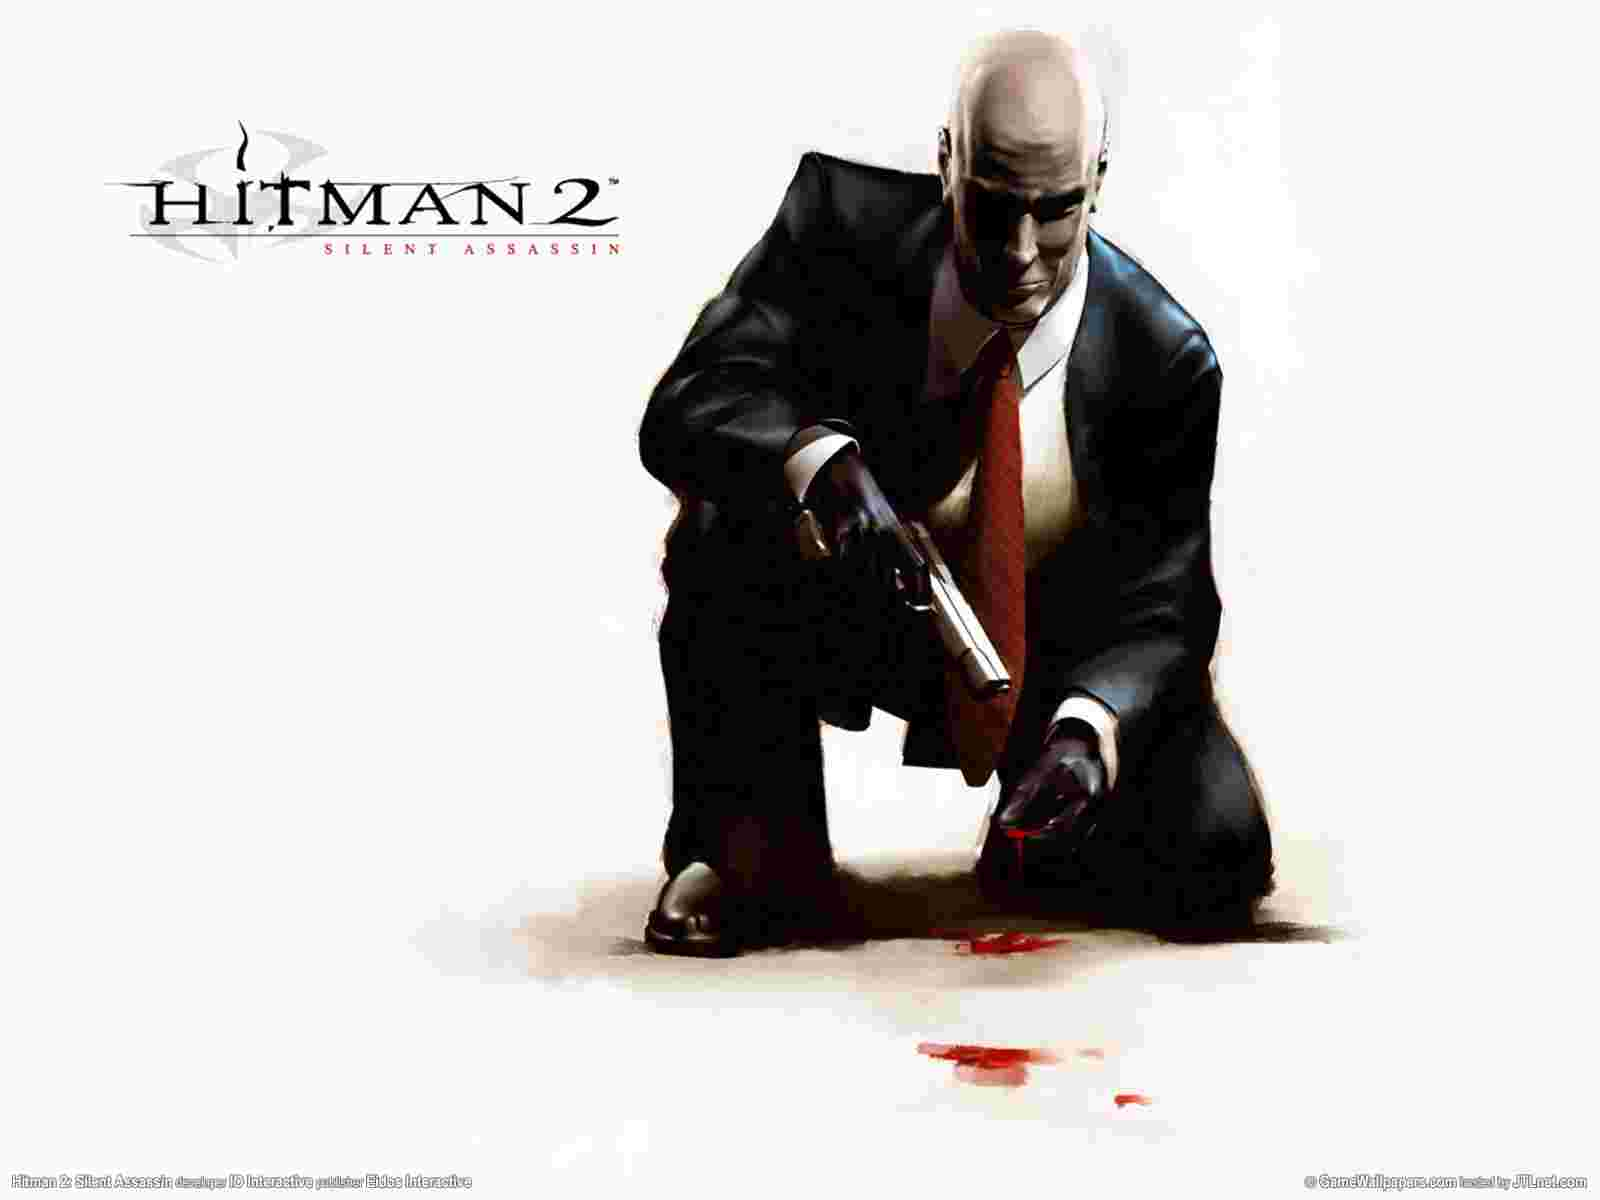 Hitman 2: Silent Assassin (Steam Key, Region Free)